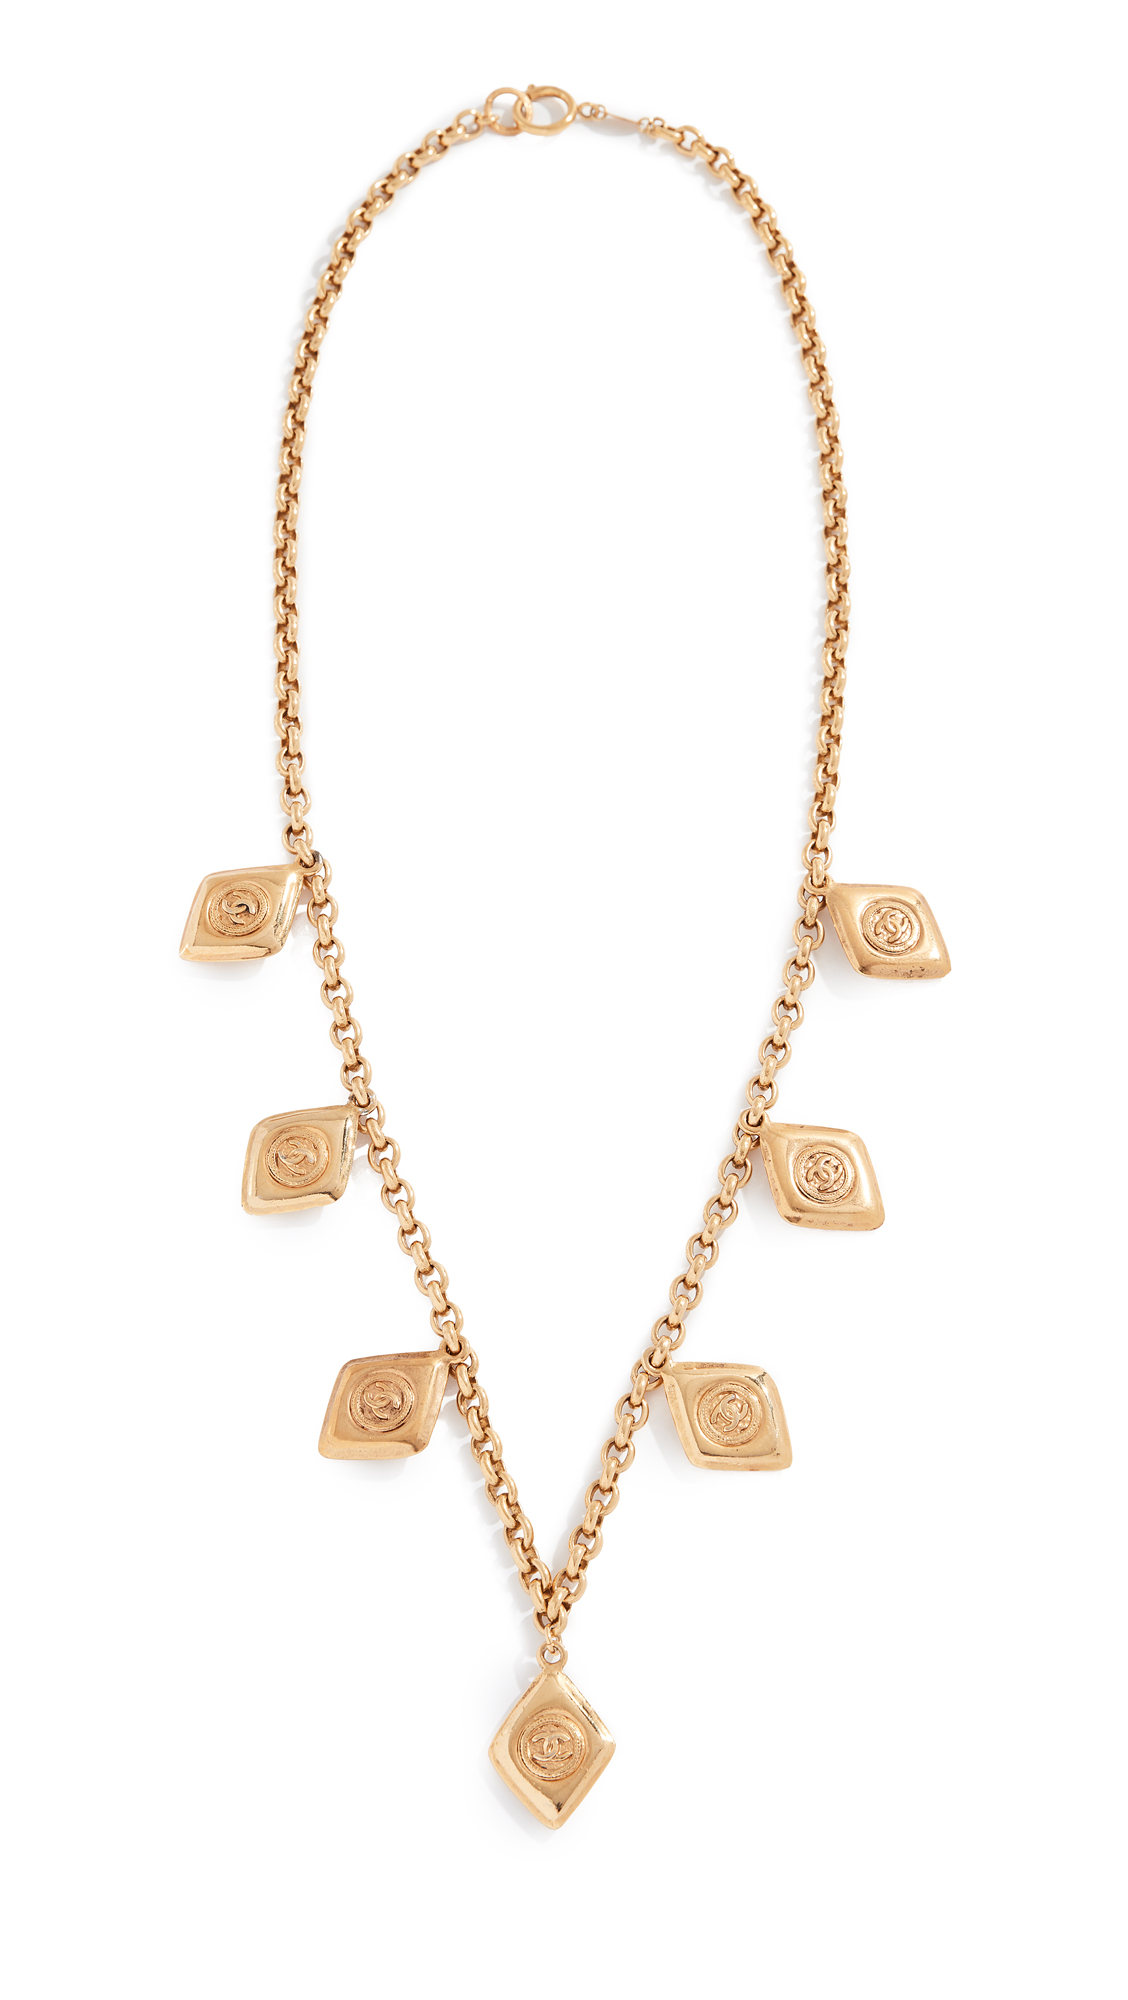 CHANEL CHARM NECKLACE